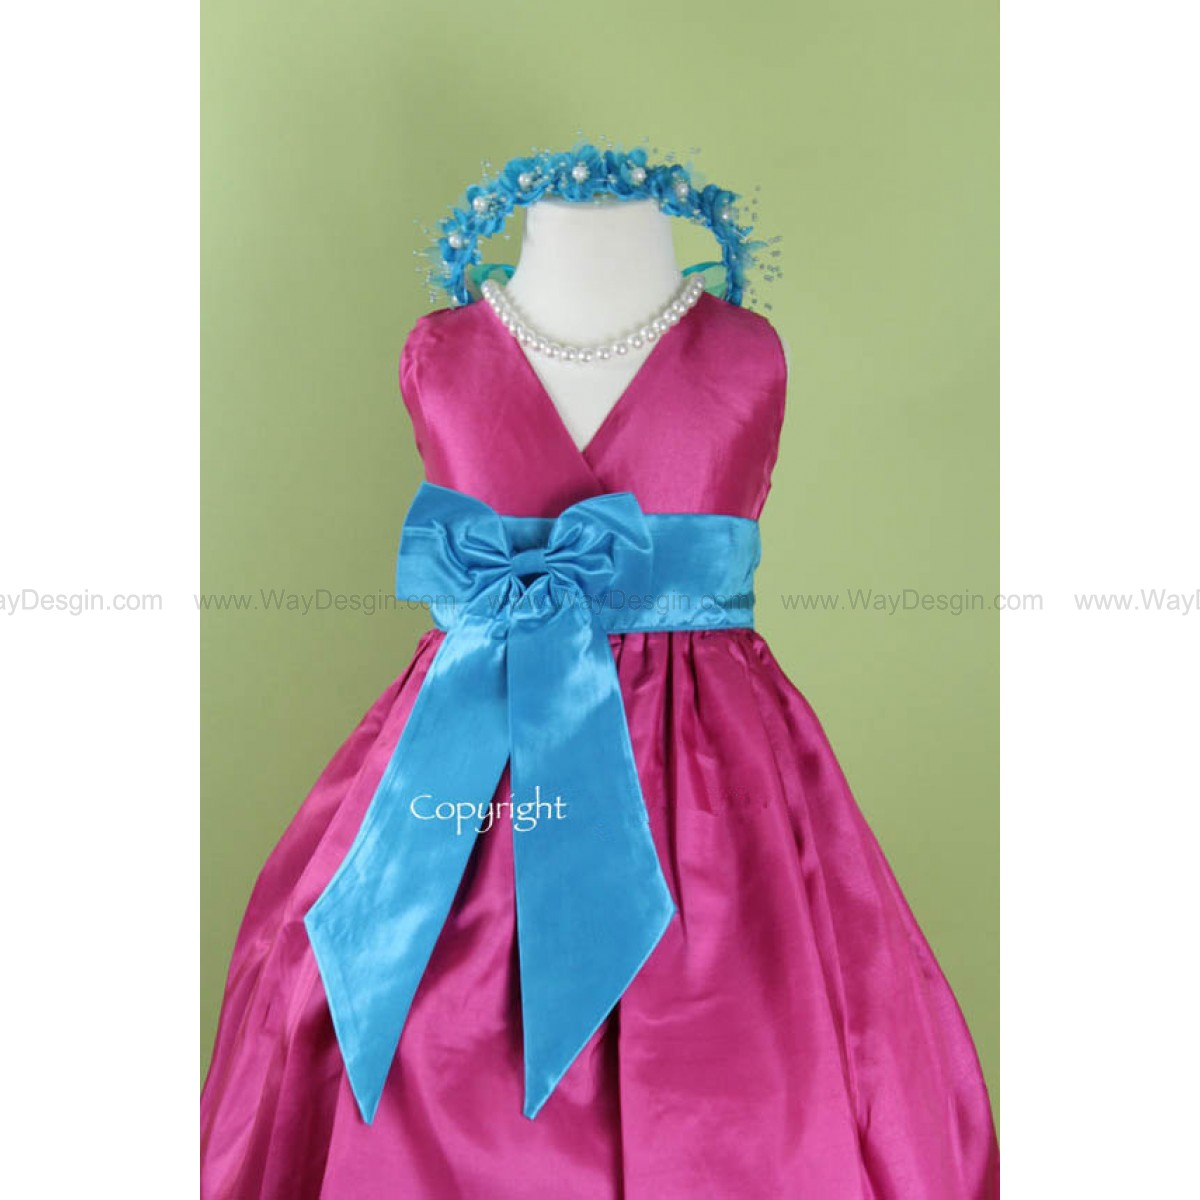 Flower Girl Dress - FUCHSIA V Dress with TURQUOISE Bow Sash - Easter, Junior Bridesmaid, Wedding - From Toddler to Teen